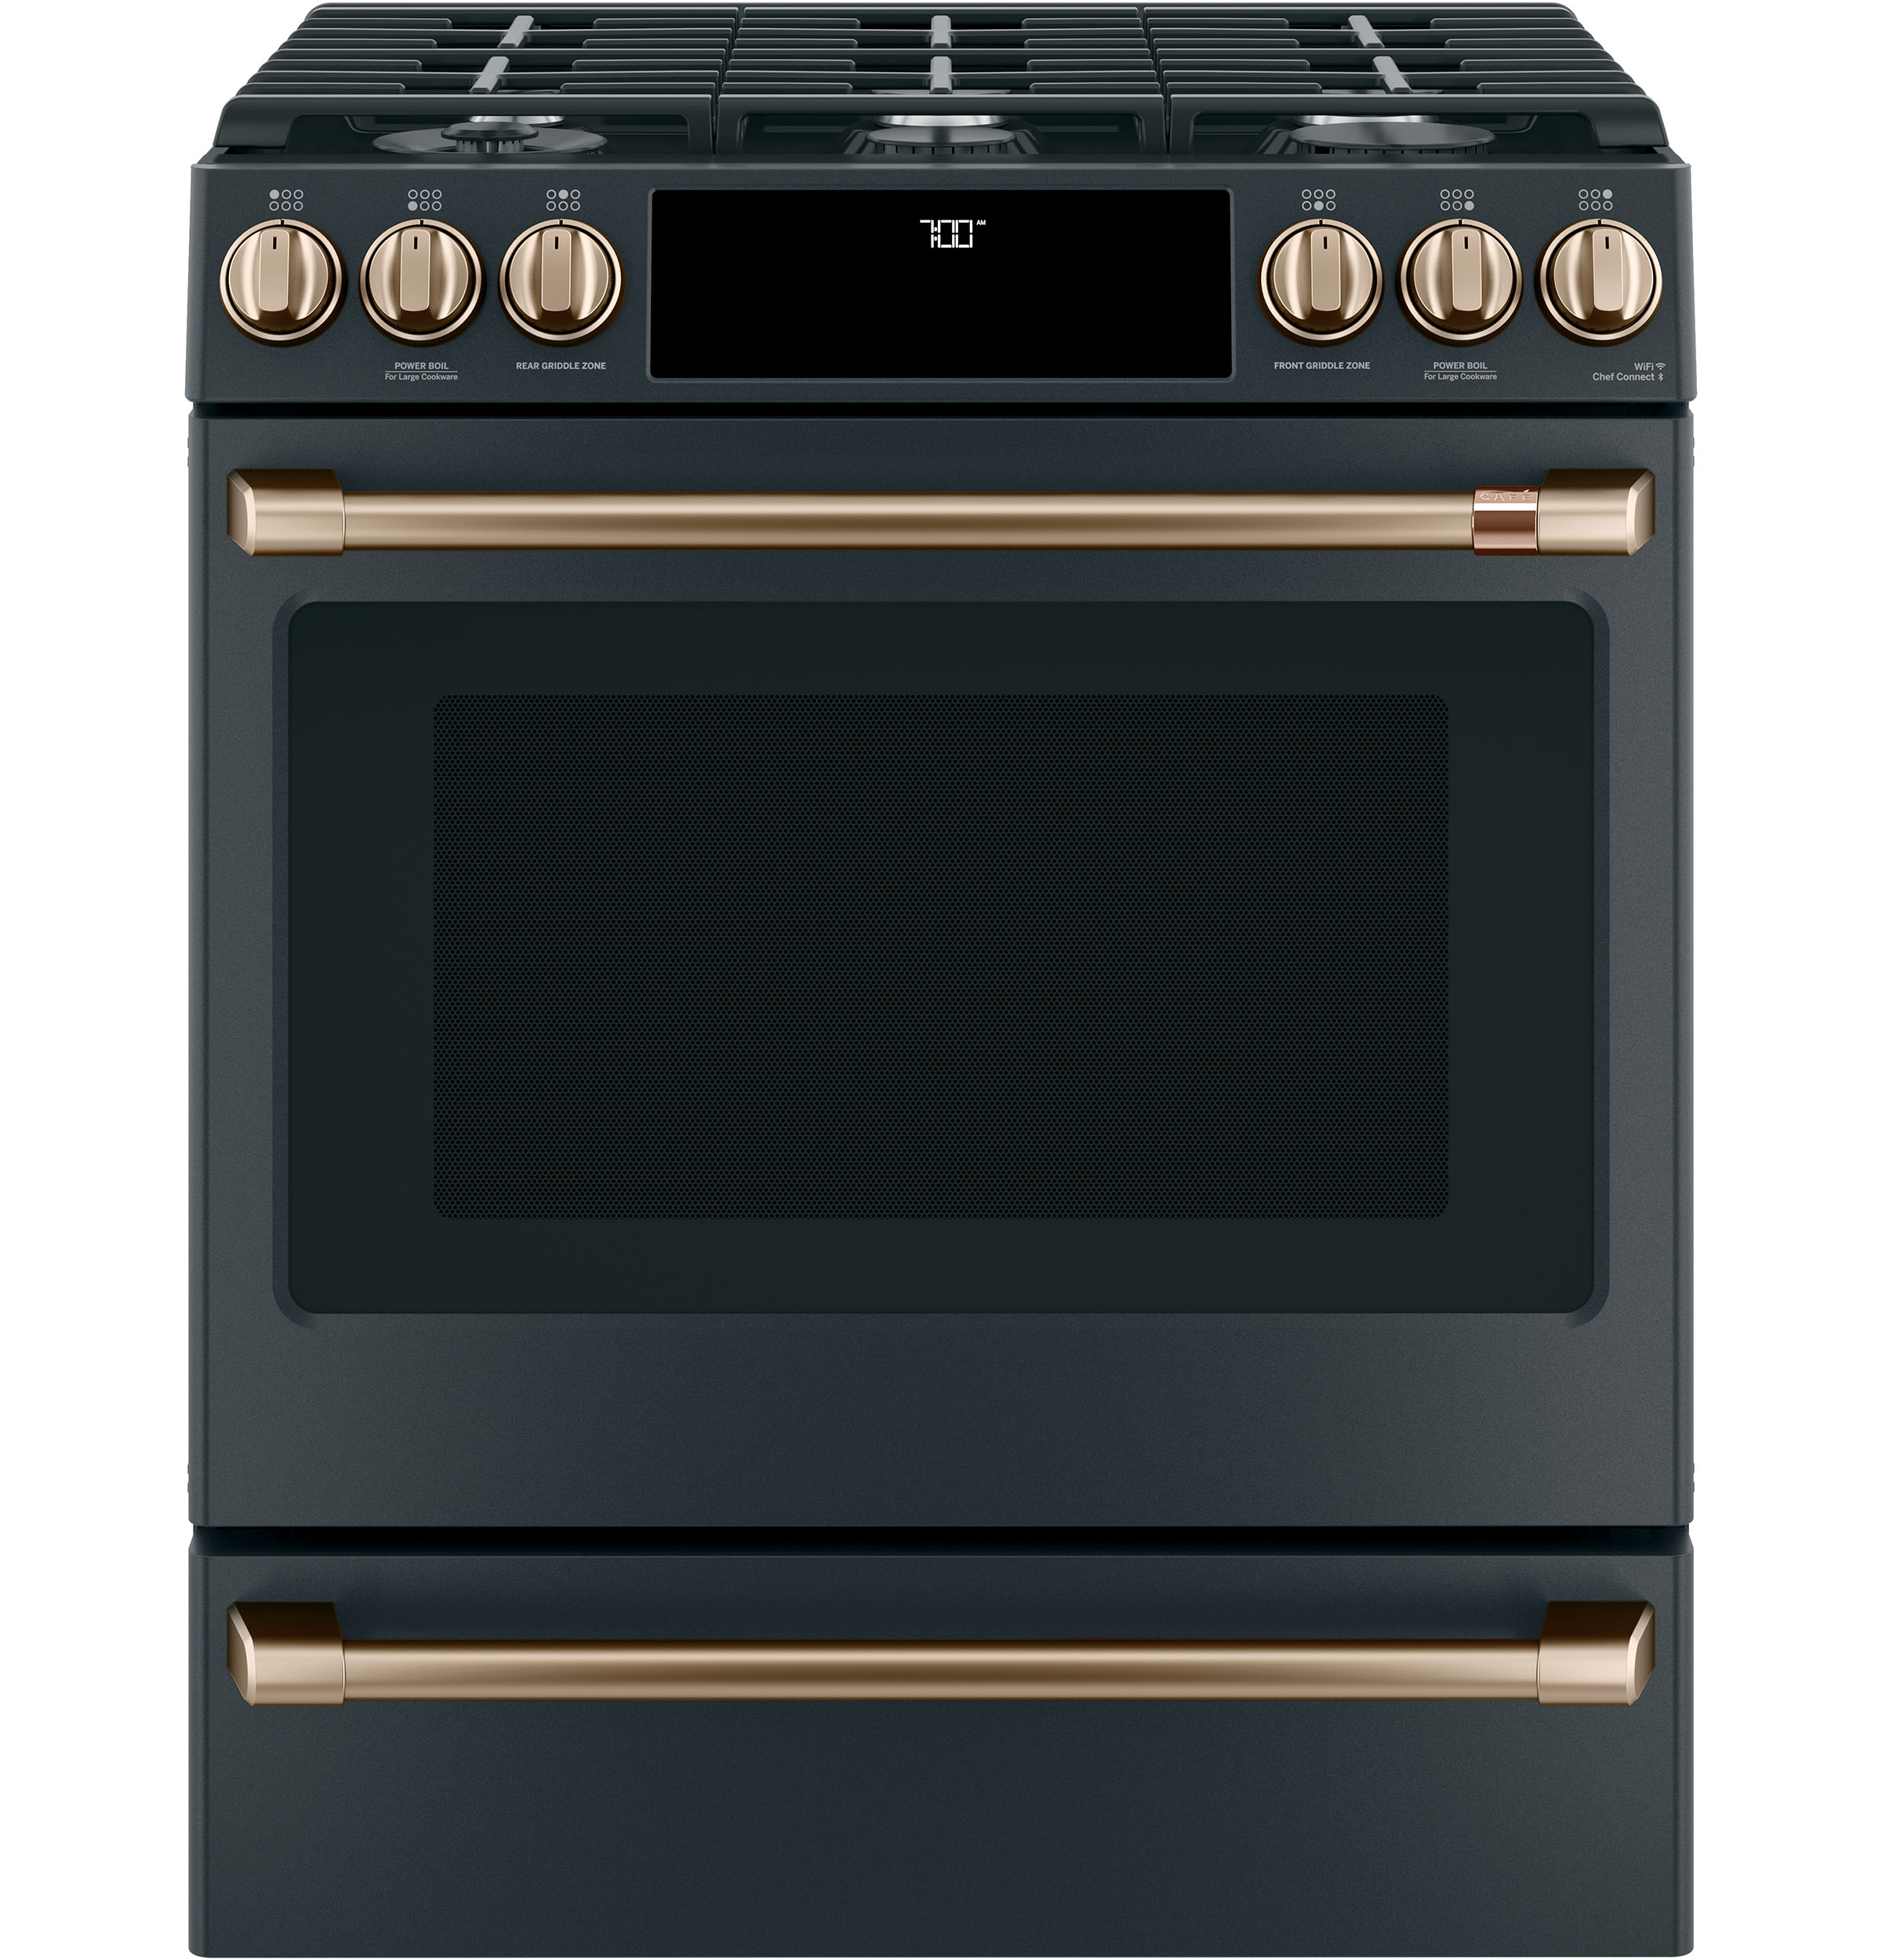 "Model: CGS700P3MD1 | Cafe Café™ 30"" Smart Slide-In, Front-Control, Gas Range with Convection Oven"